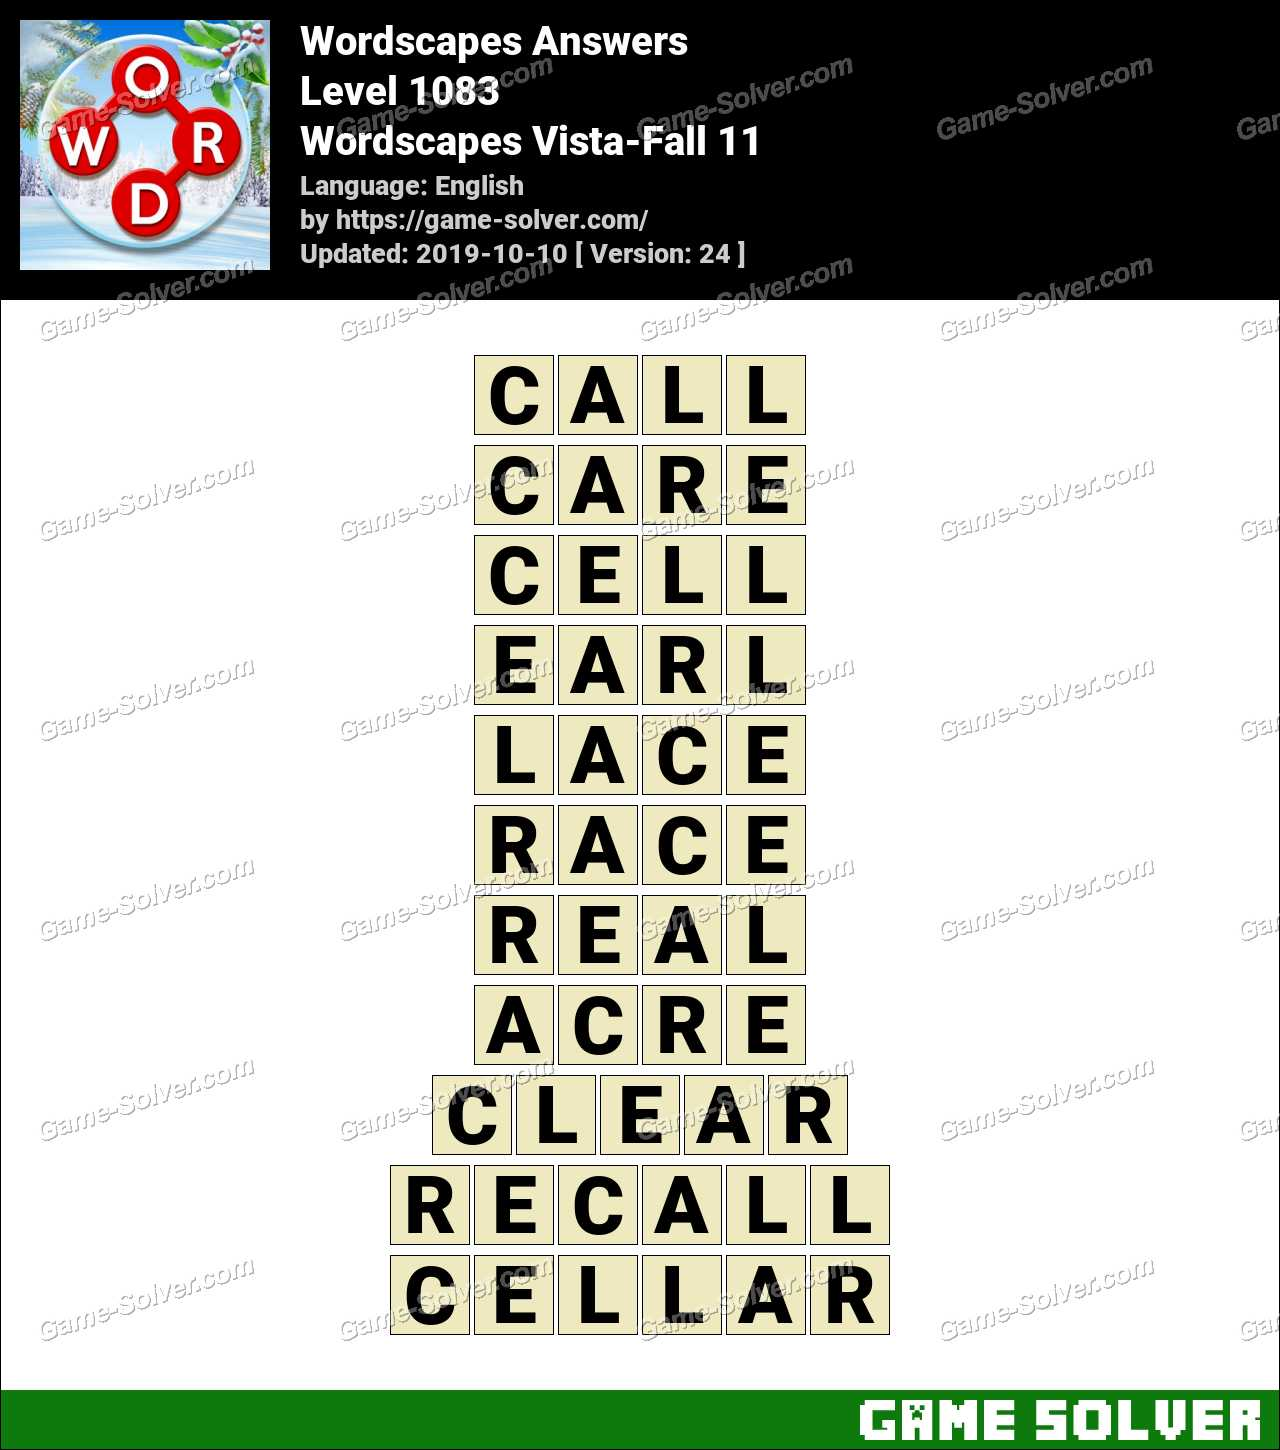 Wordscapes Vista-Fall 11 Answers